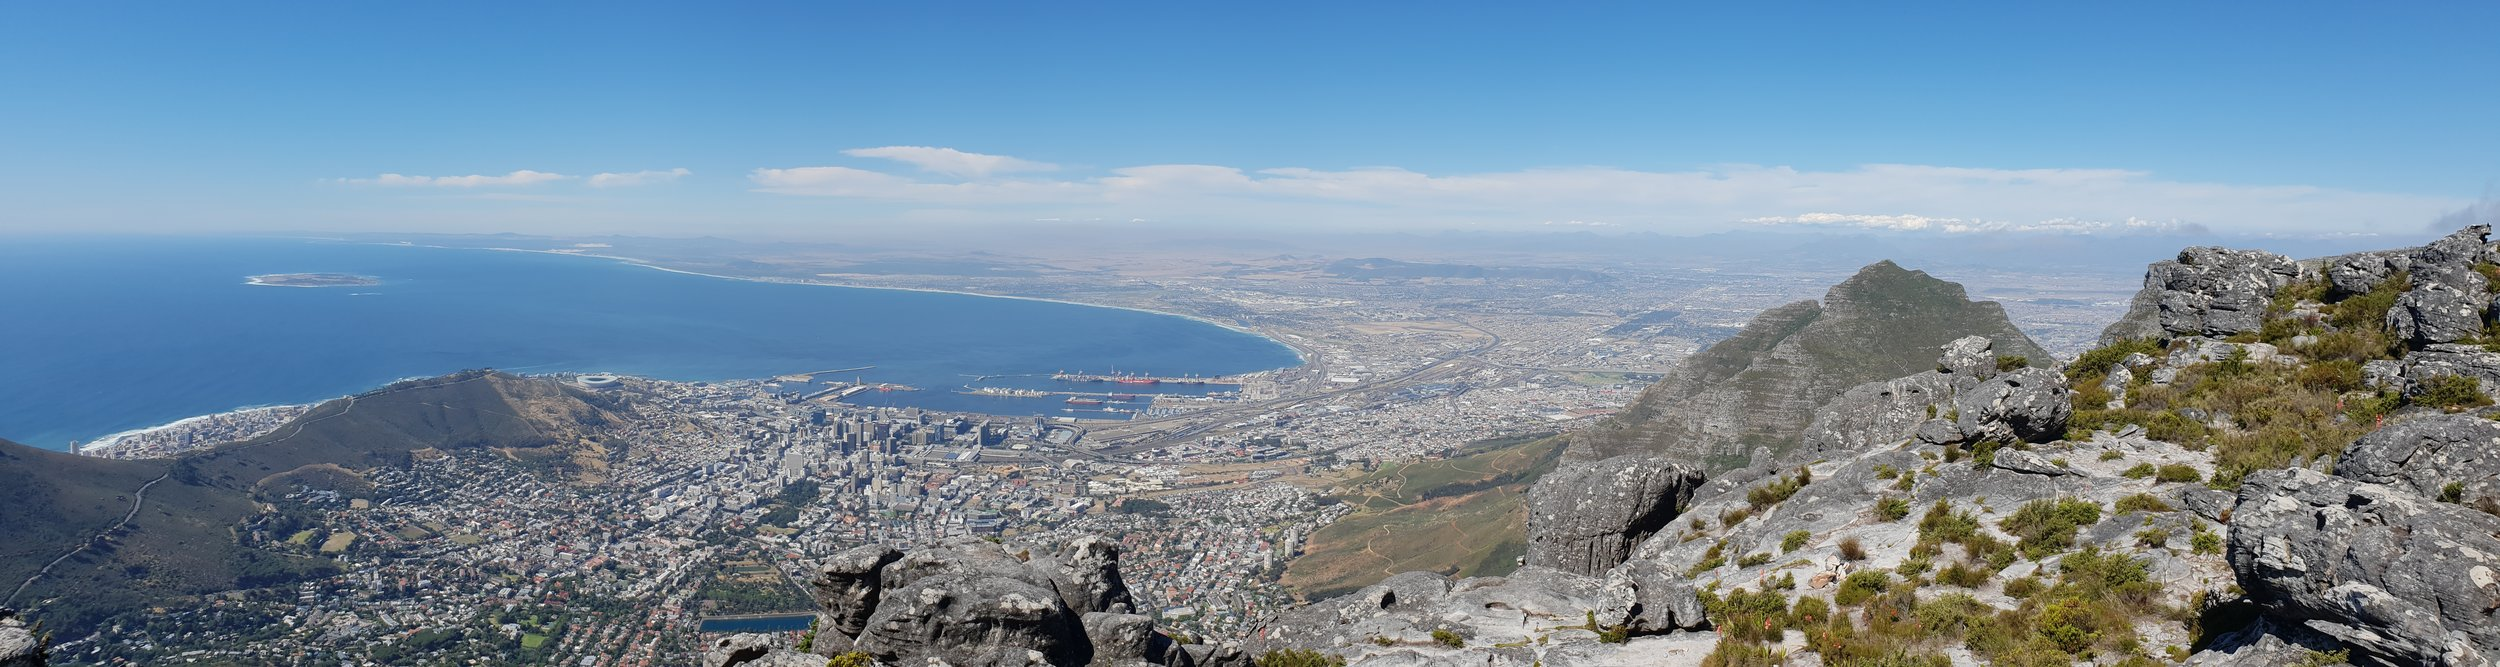 Views from the Table Mountain